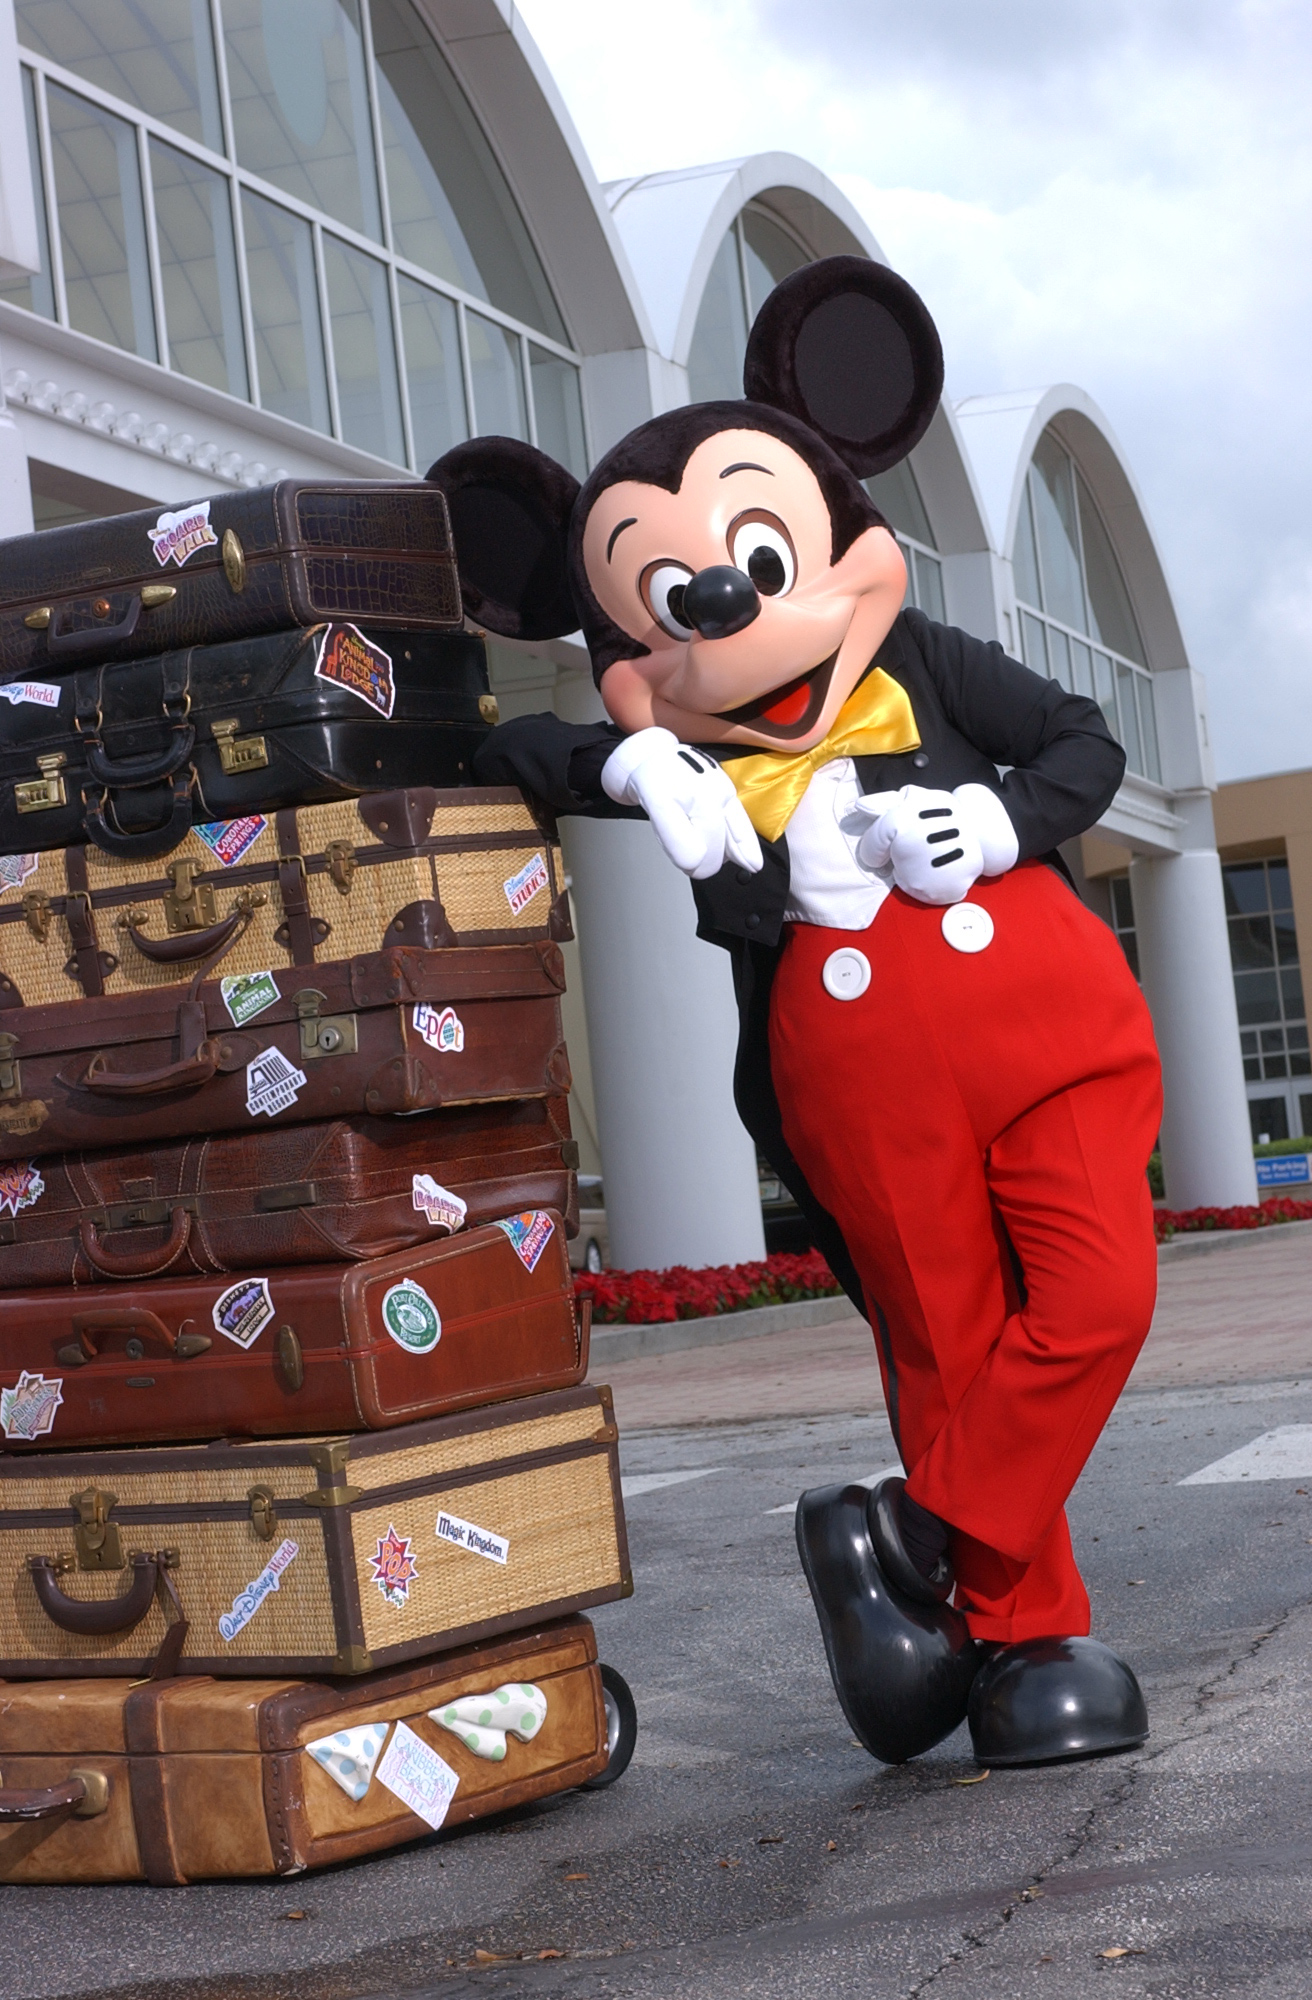 Mickey Mouse with luggage at Orlando airport